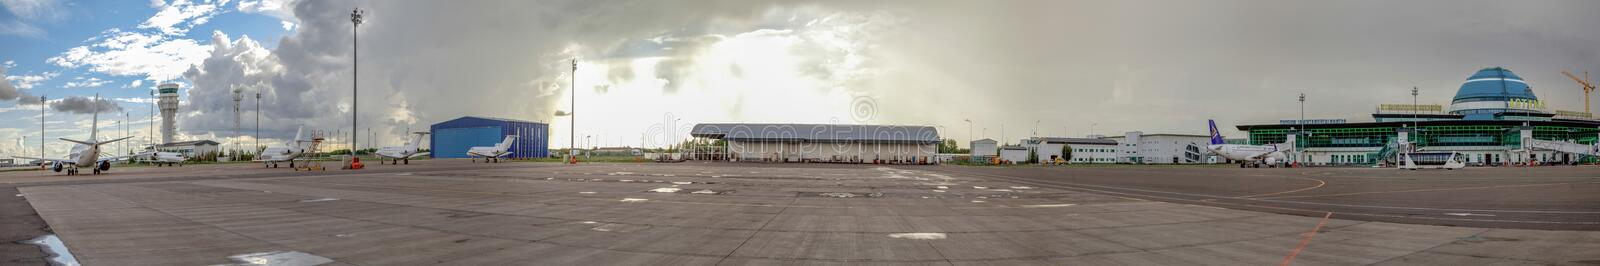 ASTANA, KAZAKHSTAN - JULY 17, 2016: Panorama of the airport on a cloudy day stock images